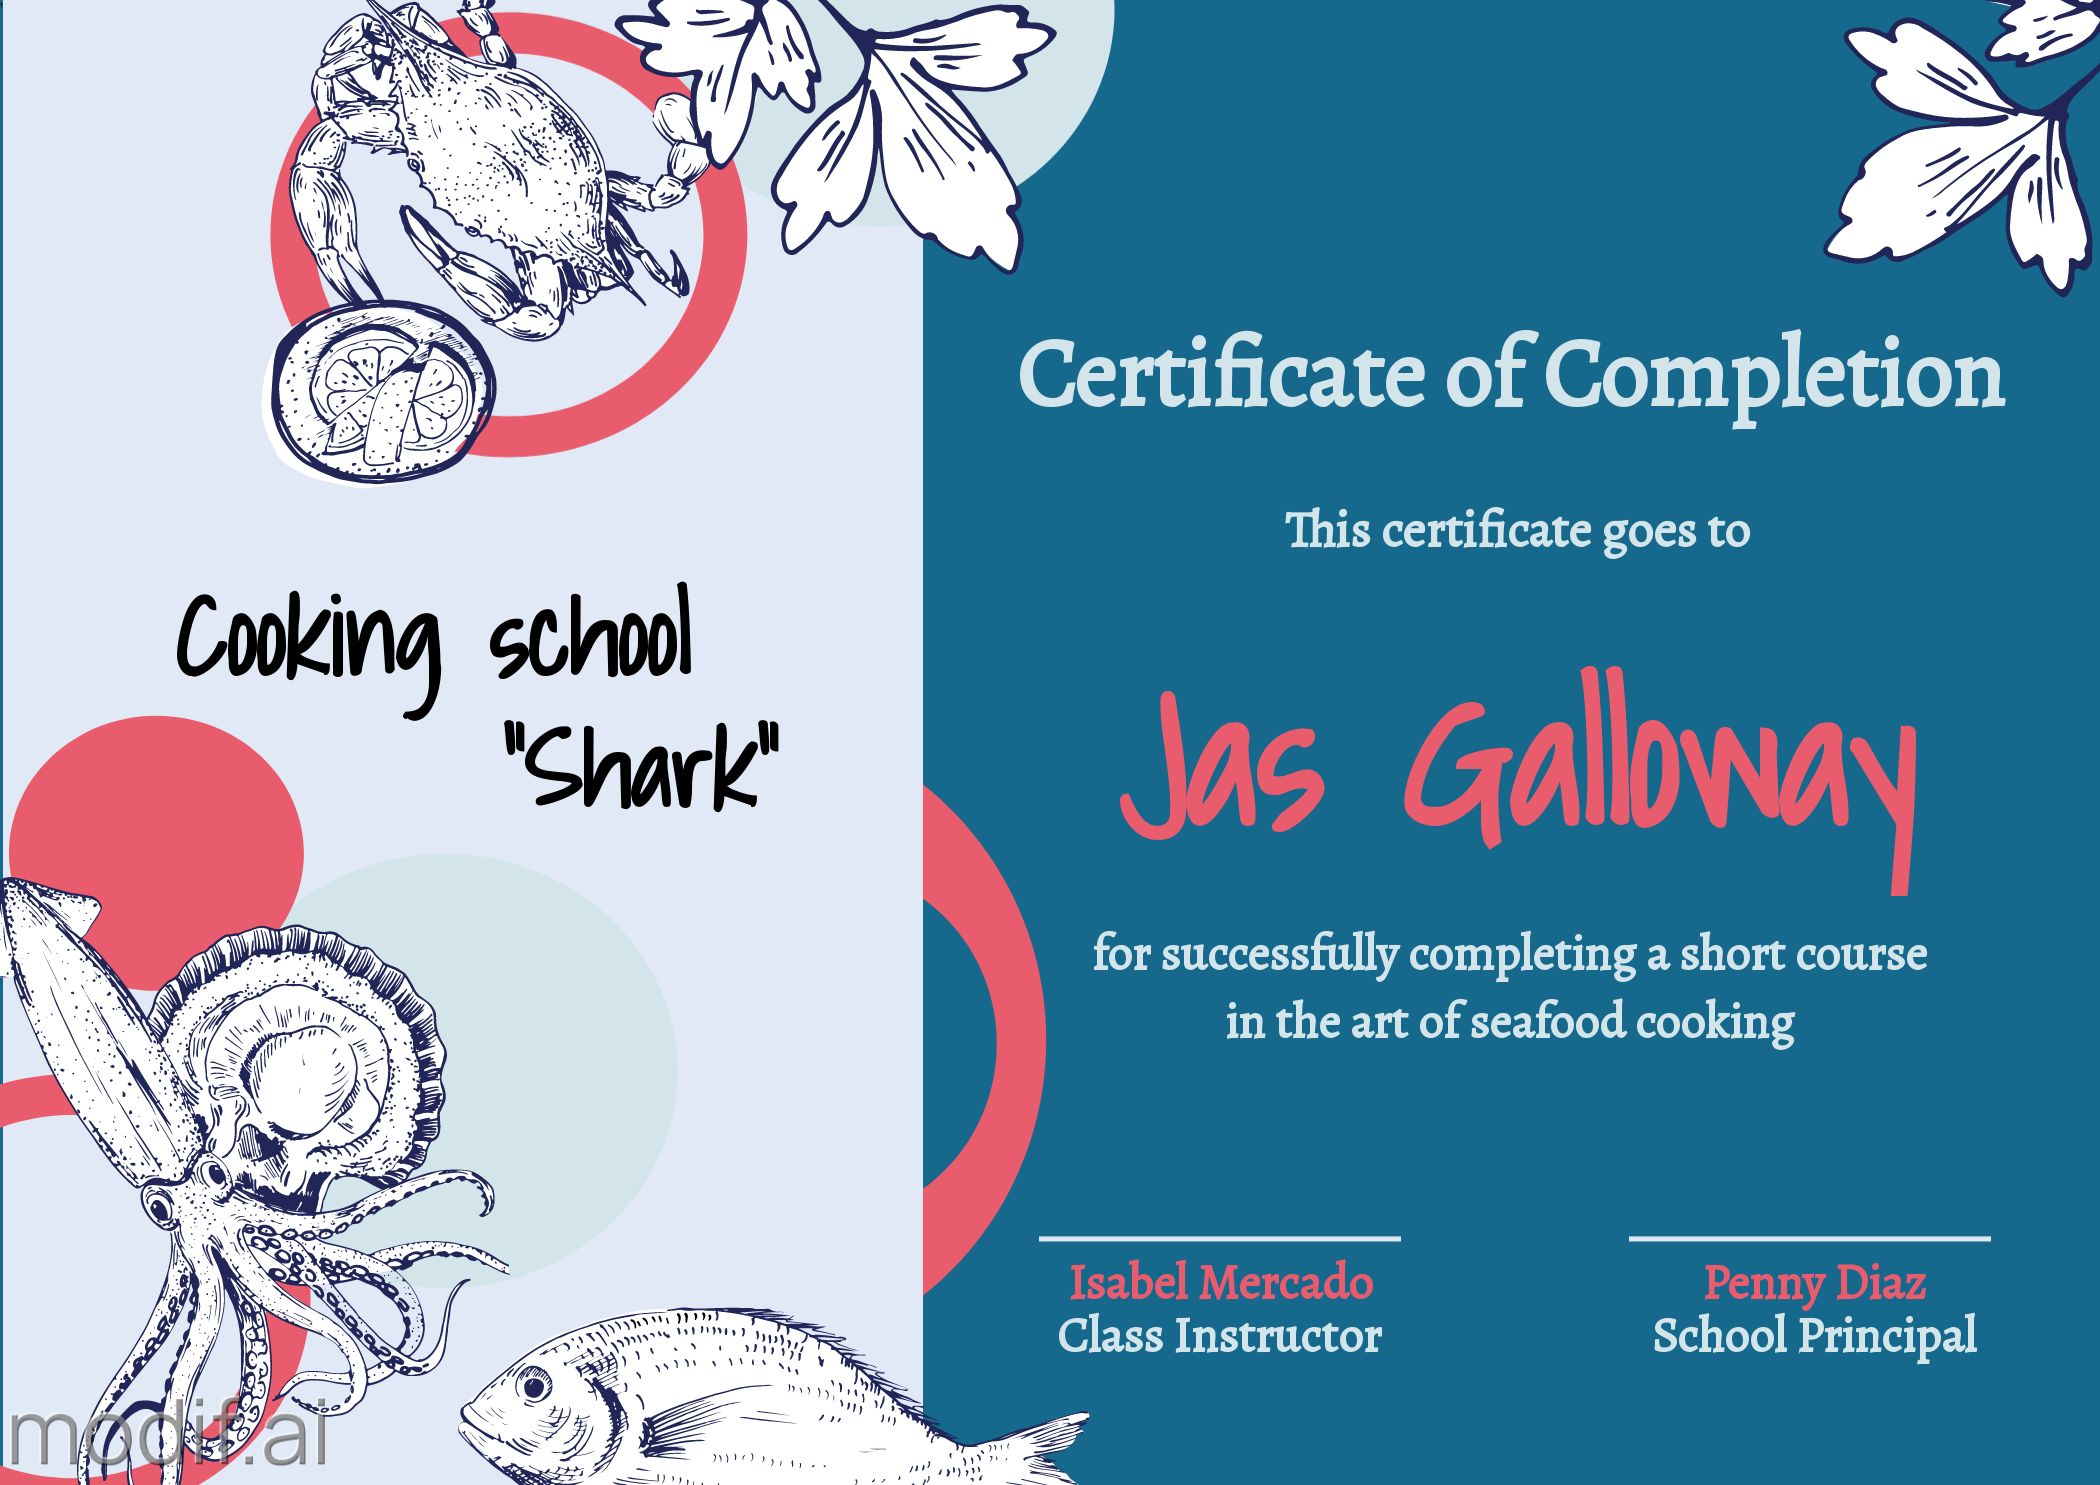 Certificate Of Completion Cooking School